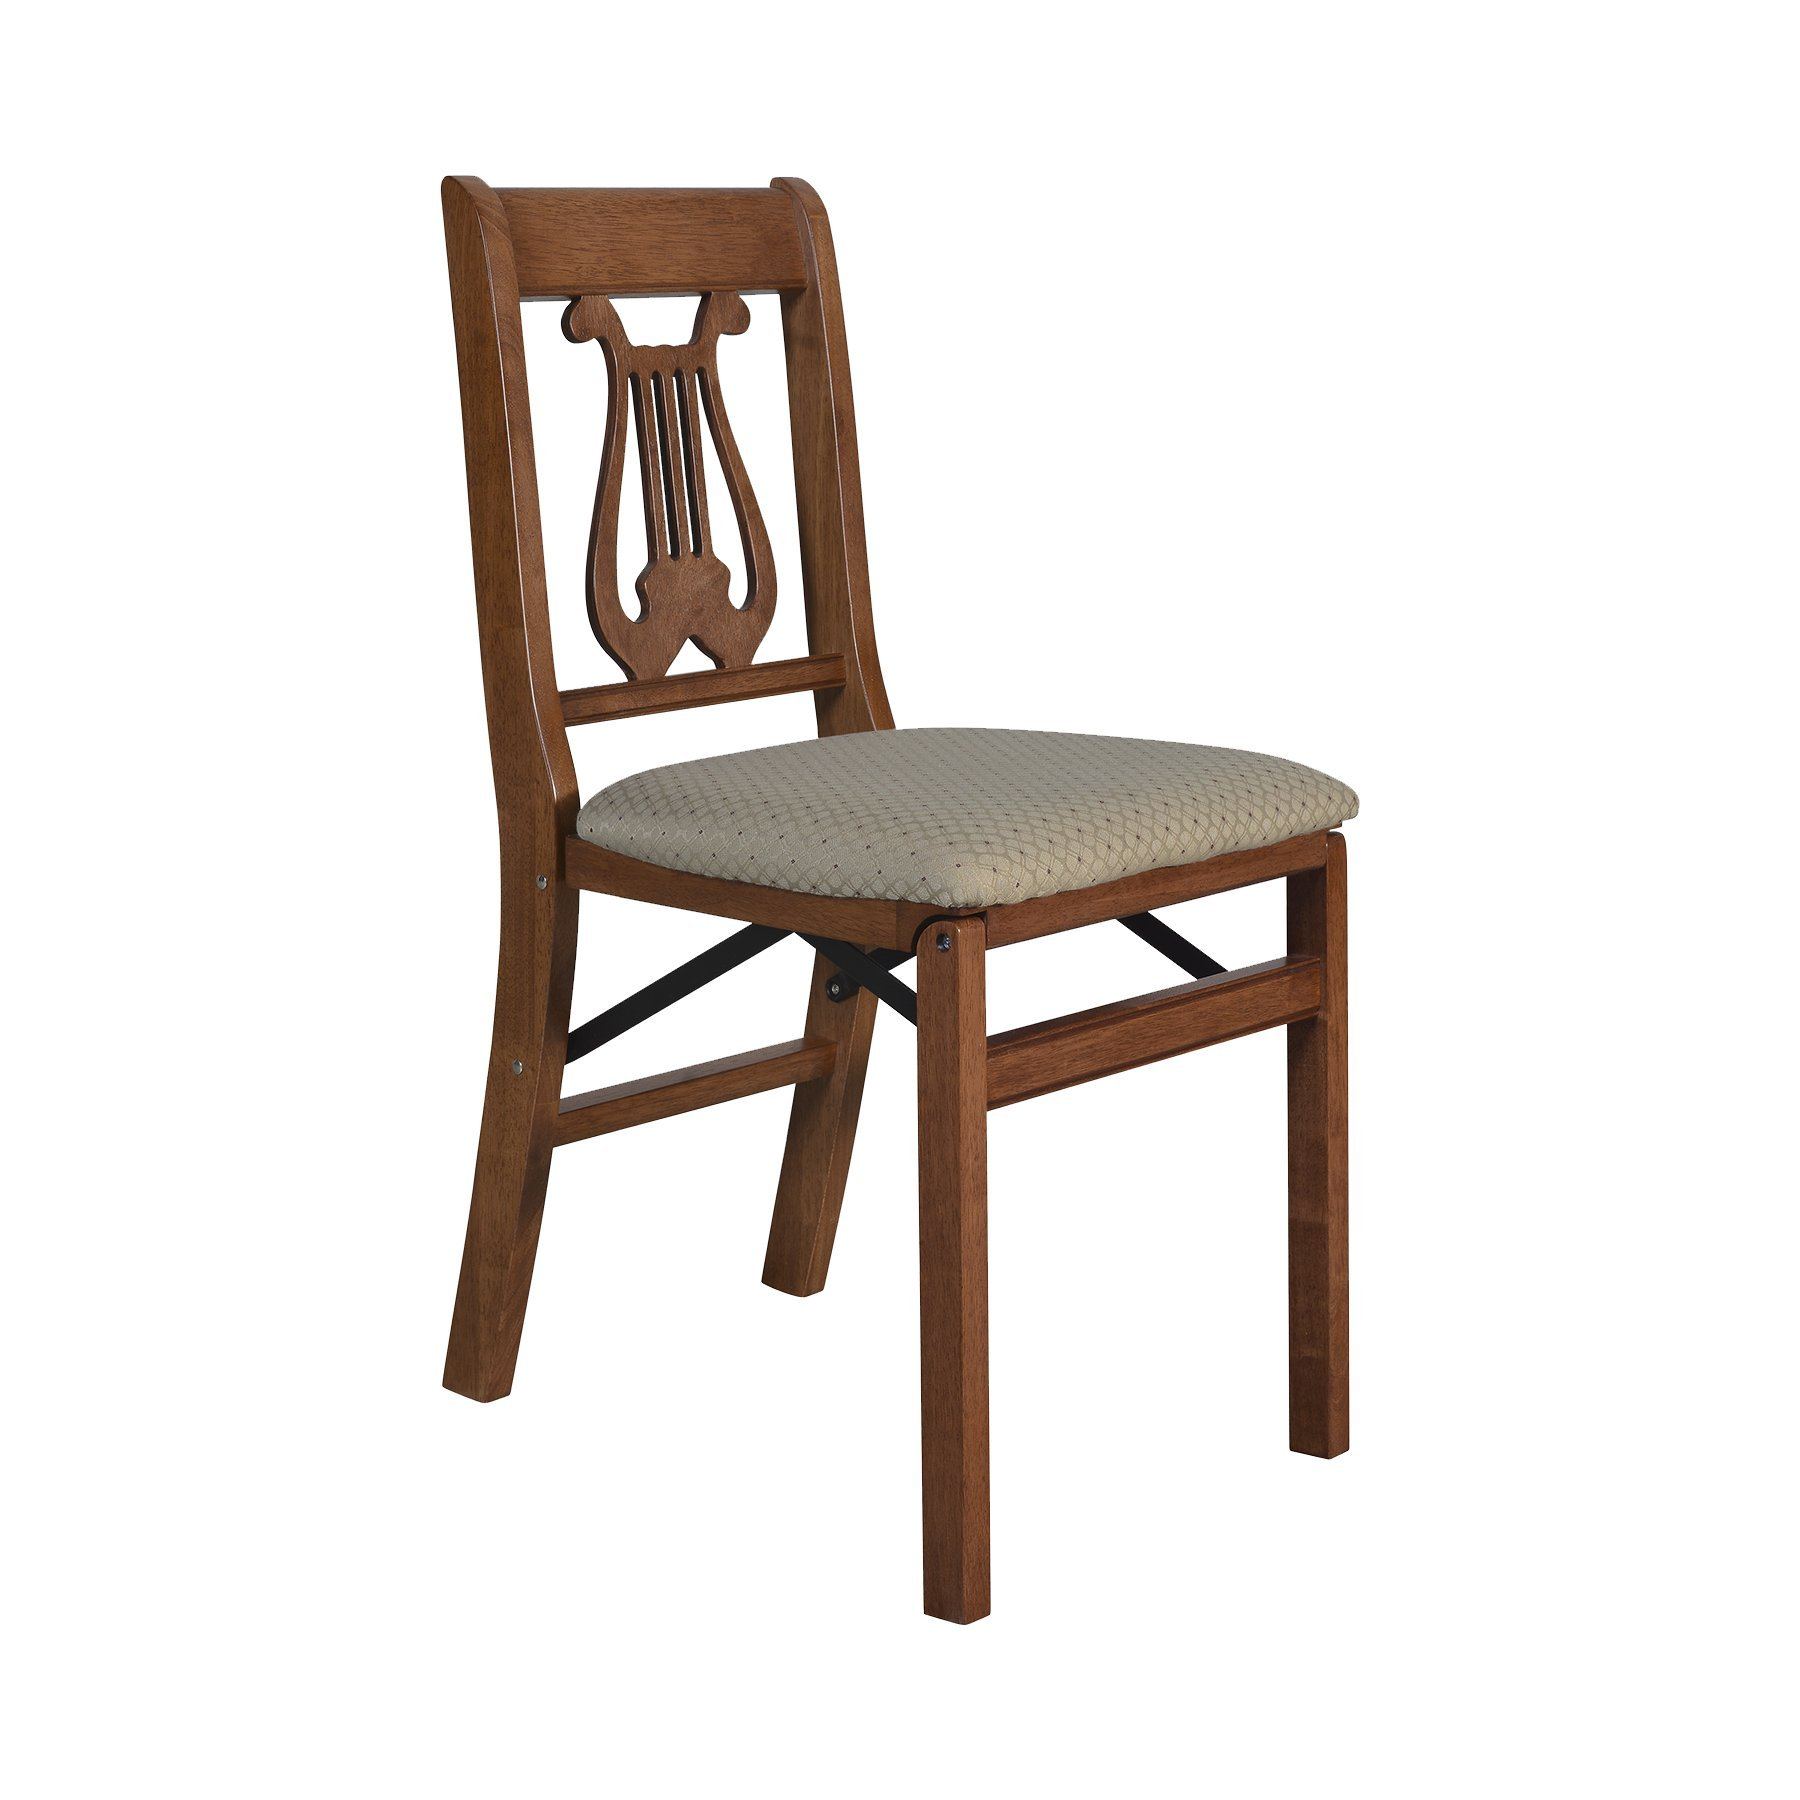 Stakmore Music Back Folding Chair Finish, Set of 2, Cherry